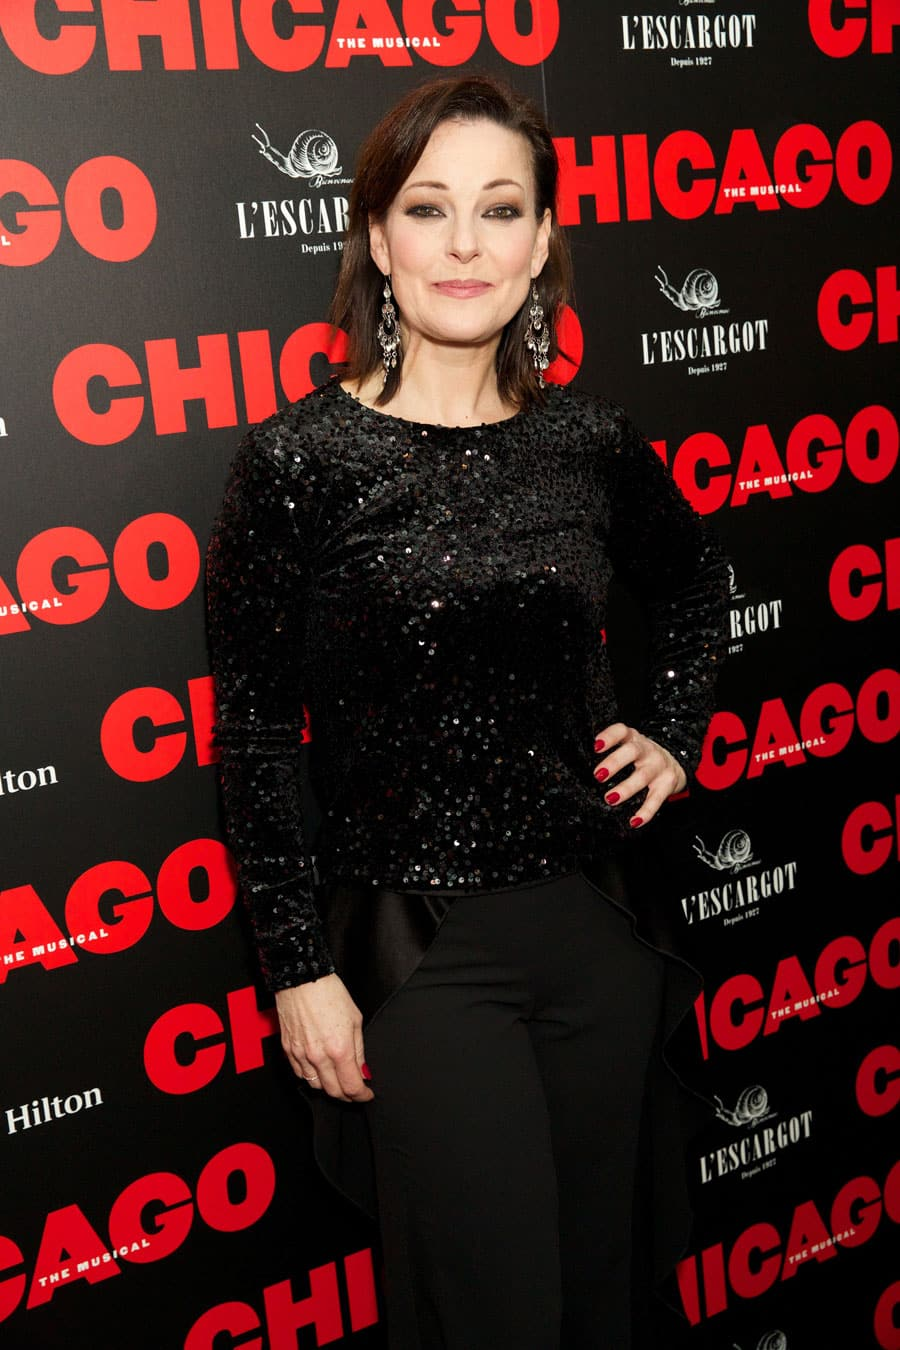 Chicago the musical revival at Phoenix Theatre